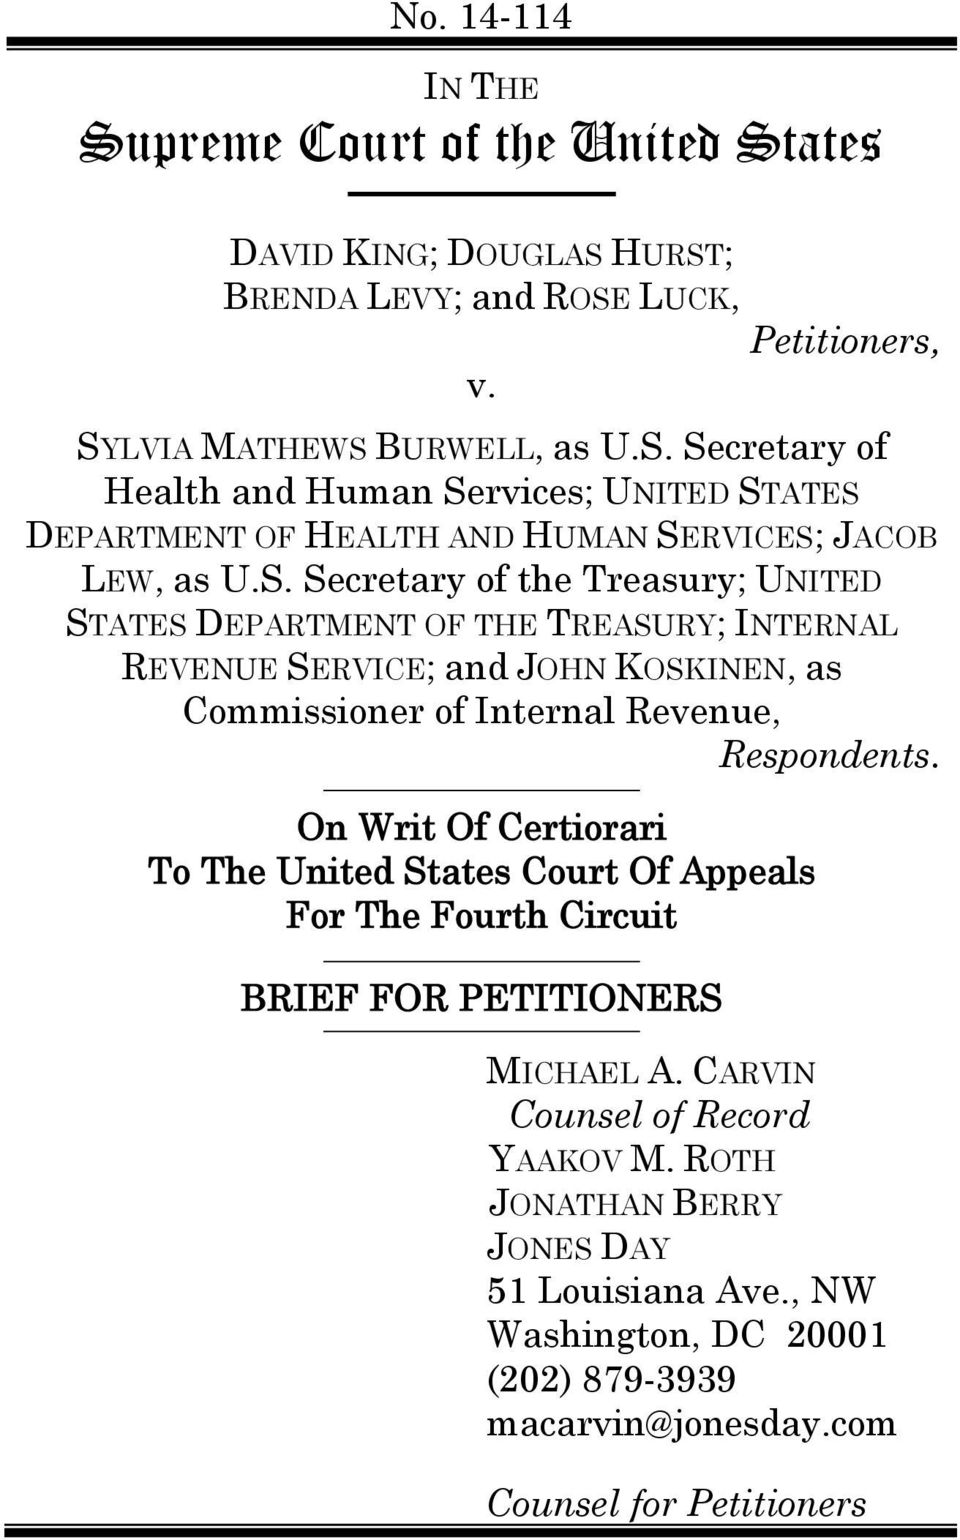 On Writ Of Certiorari To The United States Court Of Appeals For The Fourth Circuit BRIEF FOR PETITIONERS MICHAEL A. CARVIN Counsel of Record YAAKOV M.